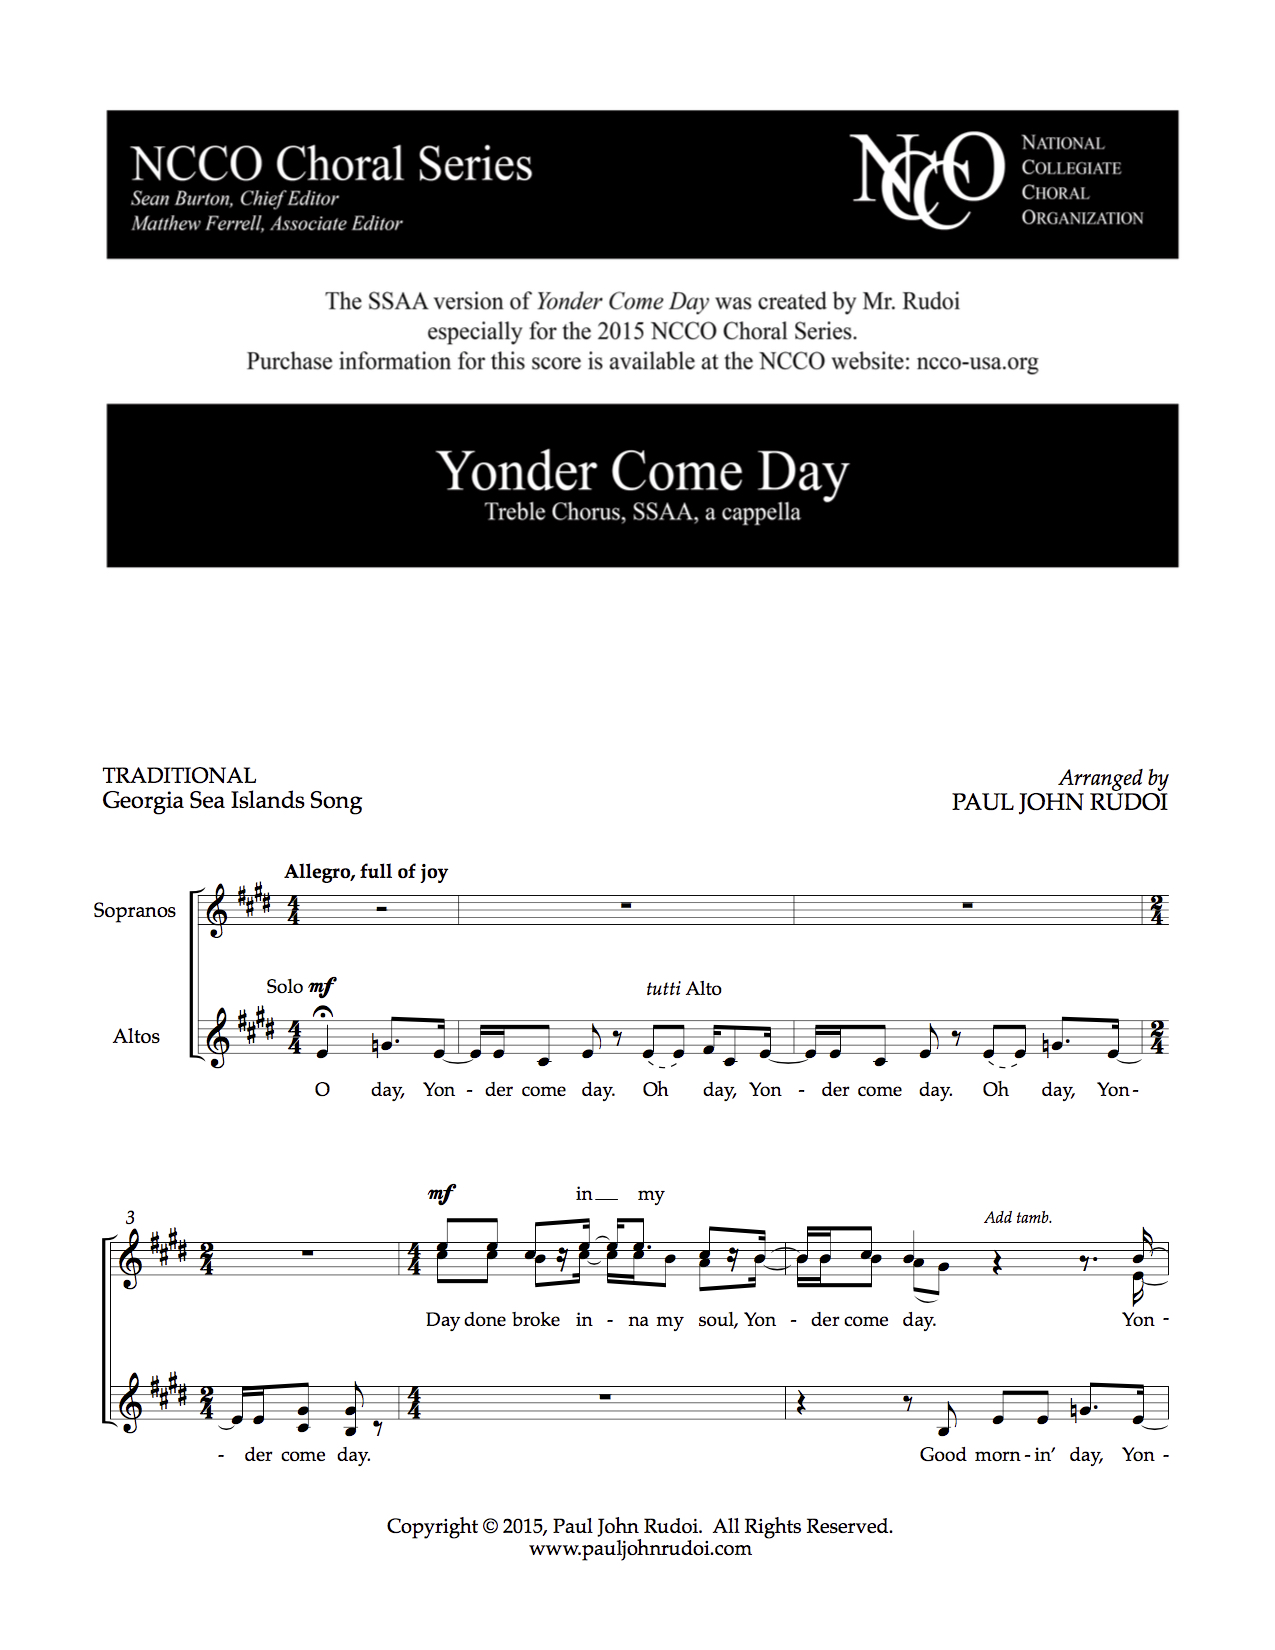 Yonder Come Day_SSAA.jpg